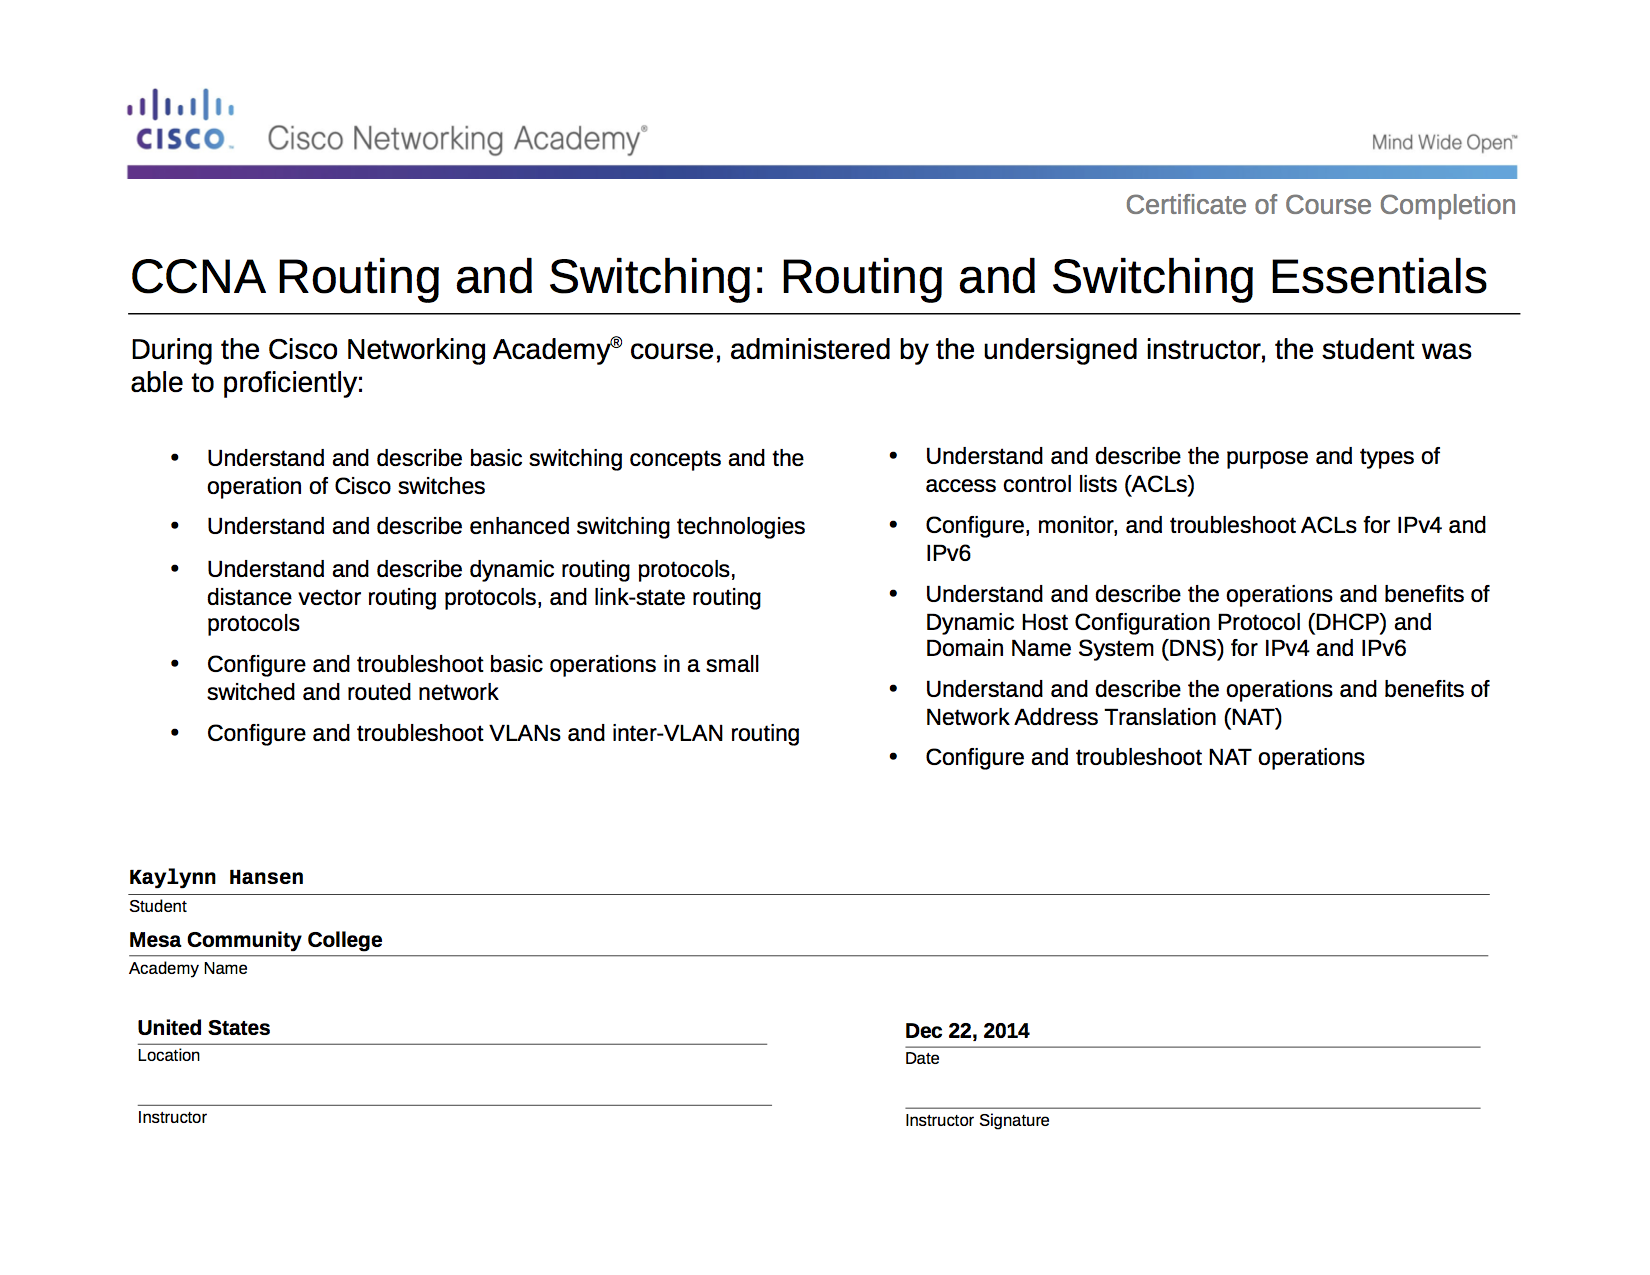 Course Completion CCNA: Routing and Switching Essentials